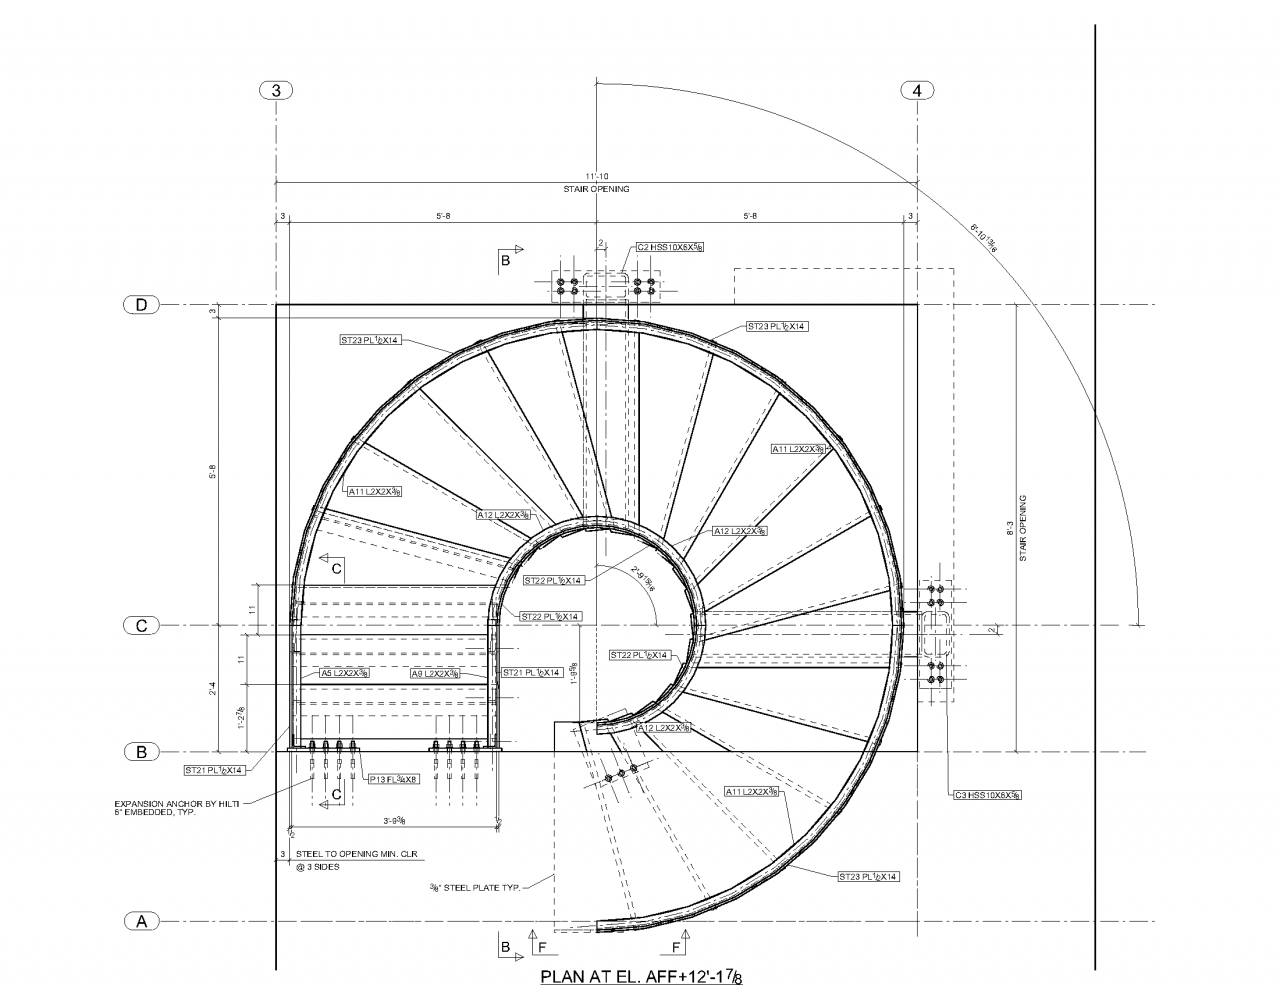 Circular stair 101 warren street new york ny plan for Square spiral staircase plans hall